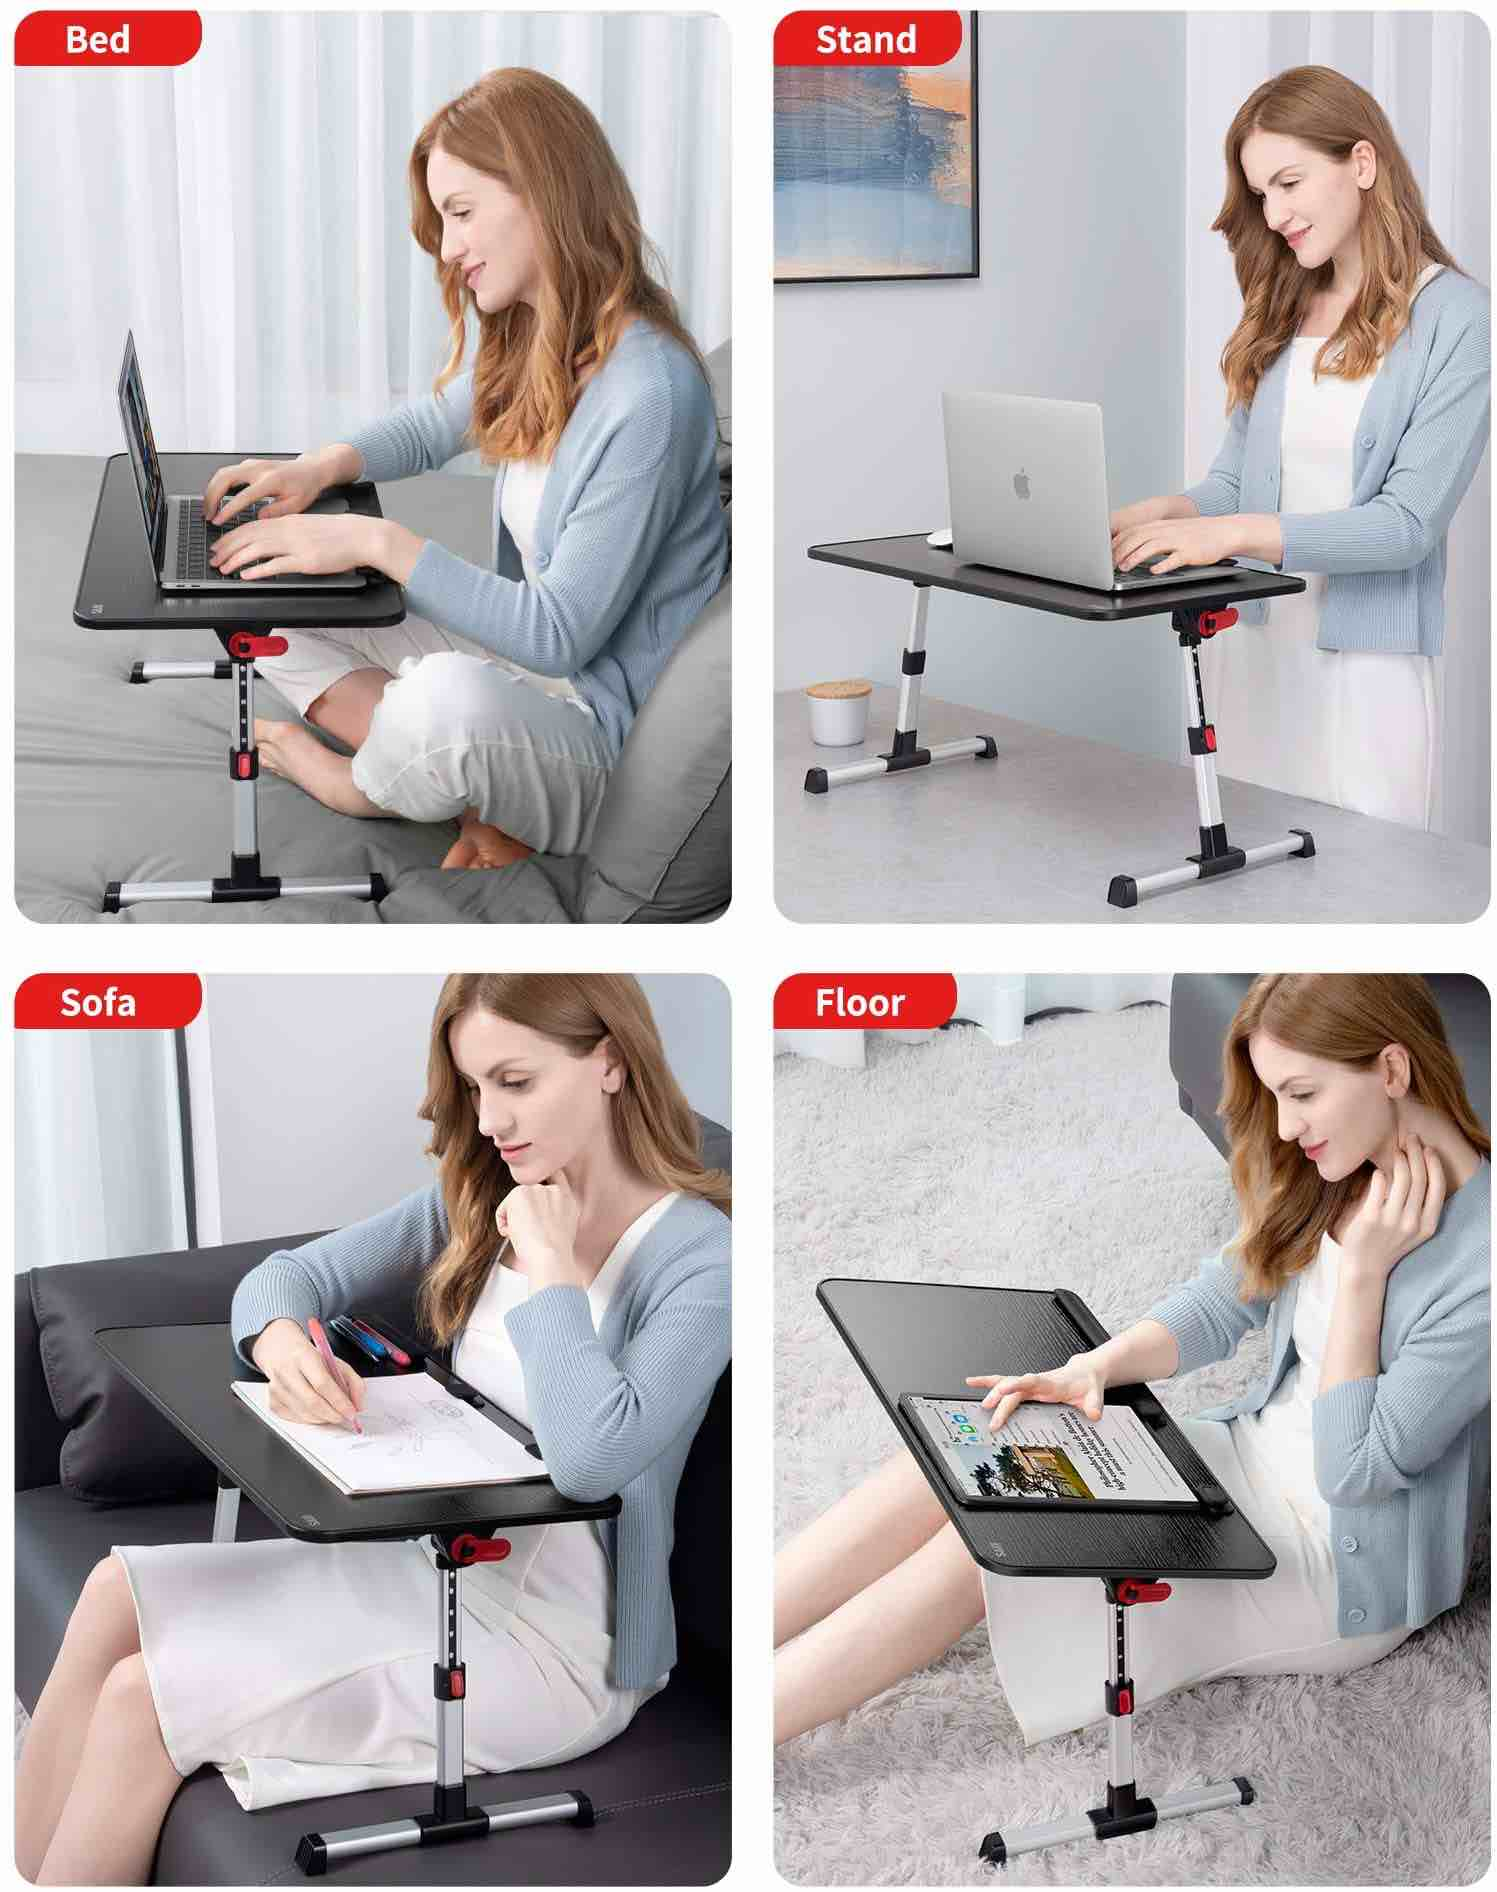 saiji-adjustable-laptop-stand-portable-standing-desk-bed-tray-table-modes